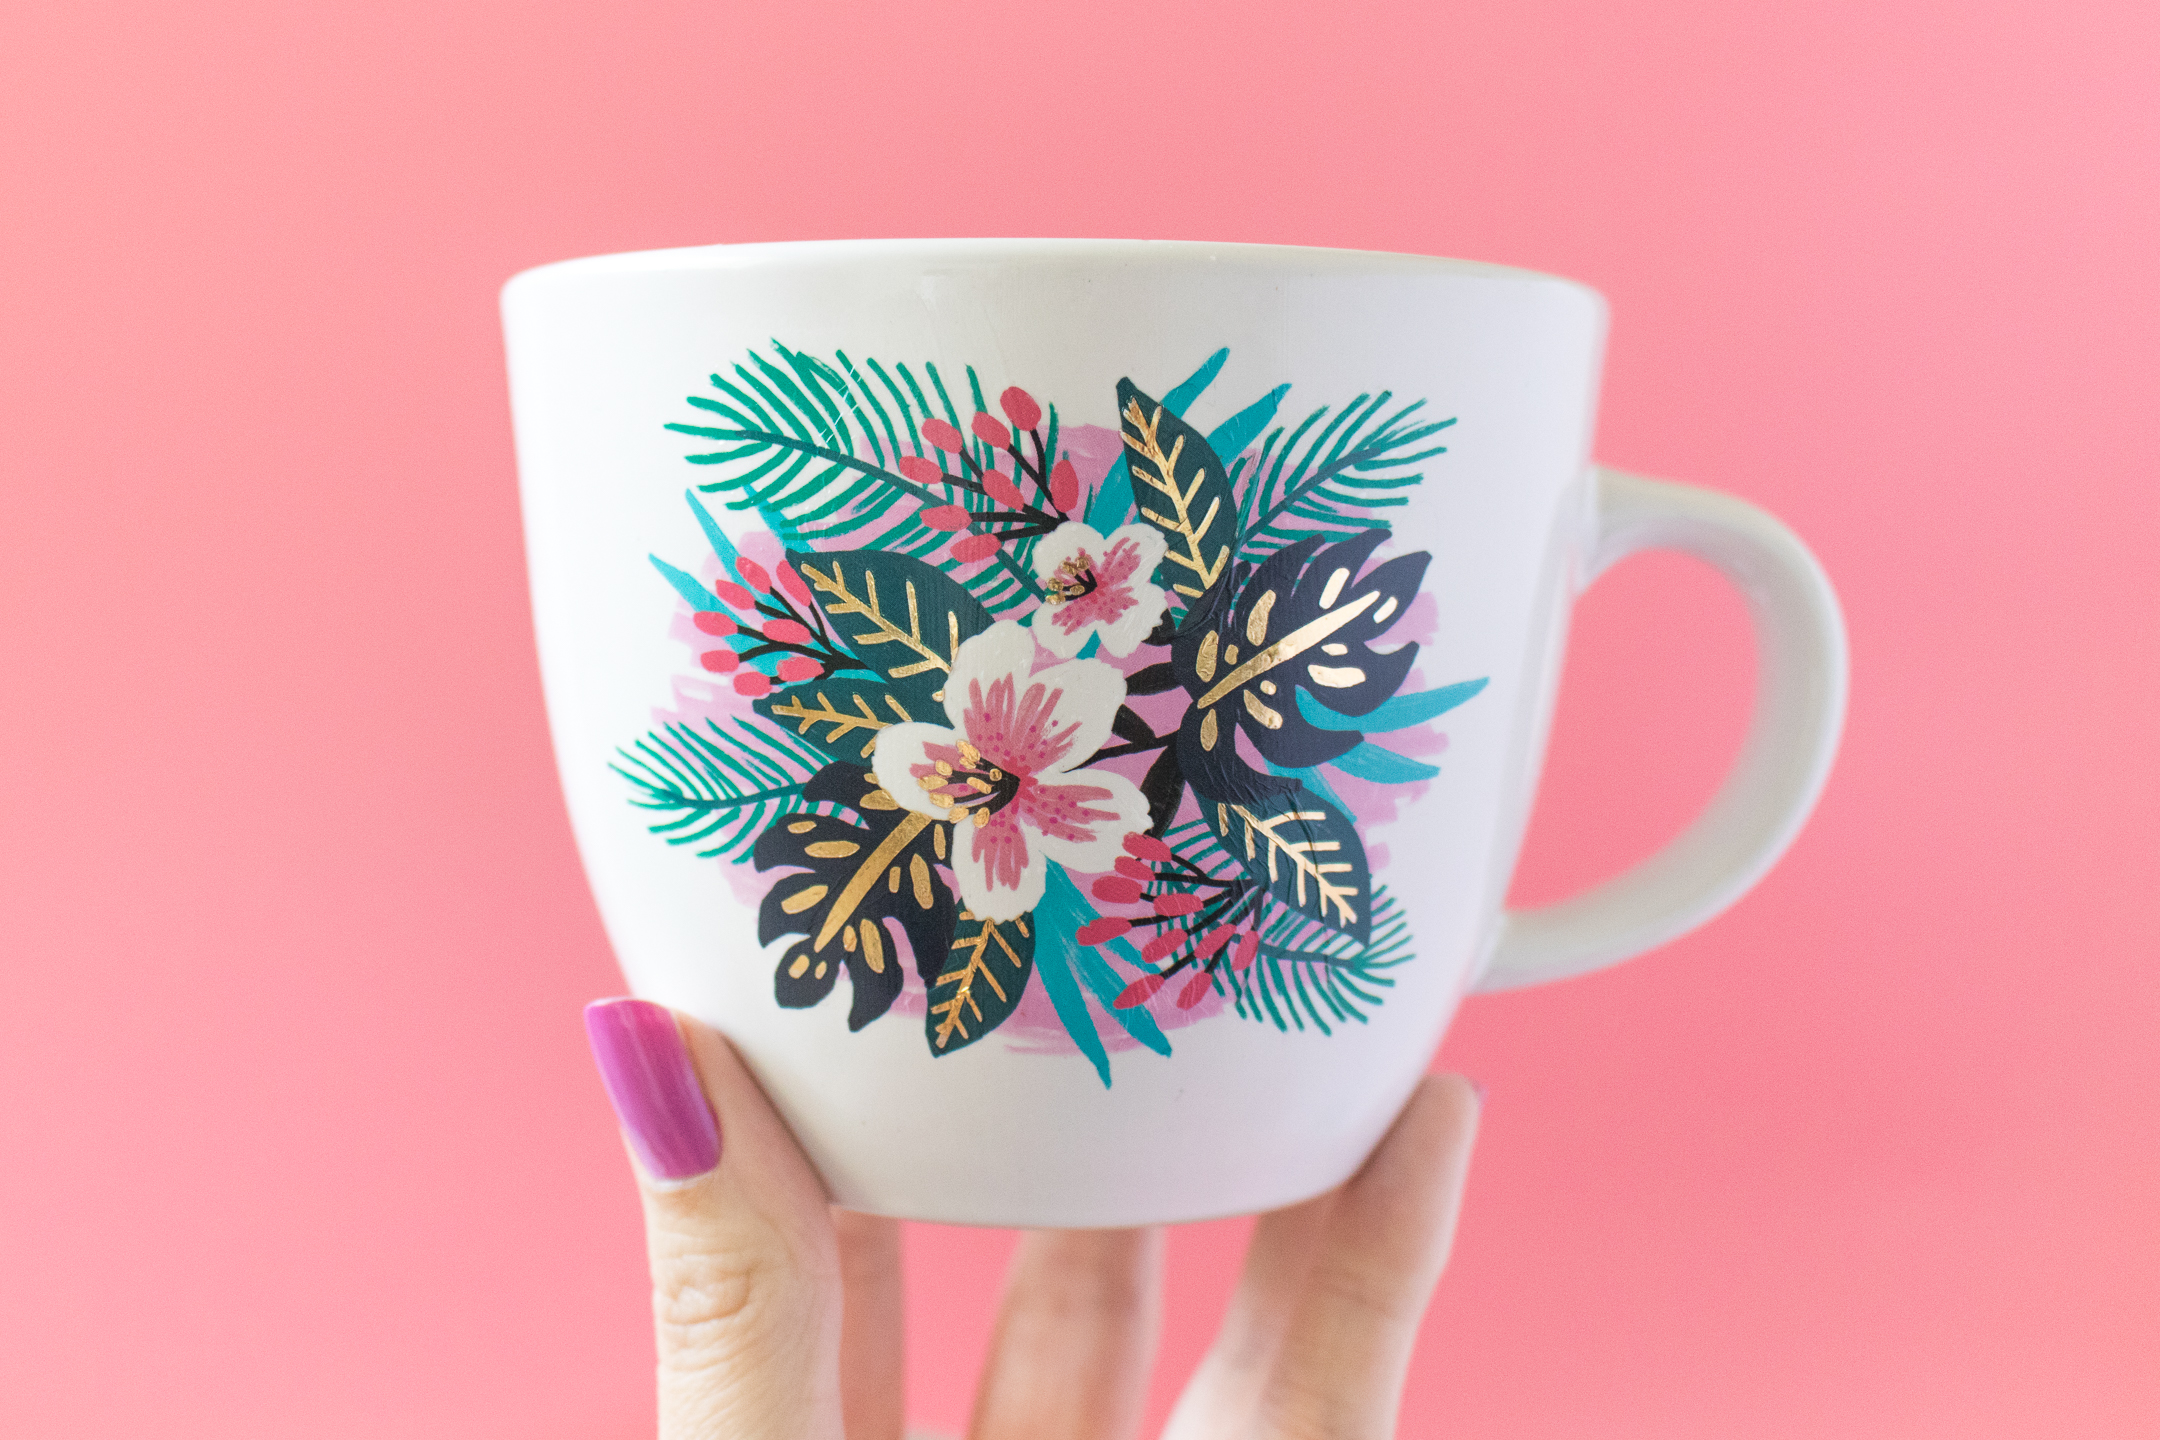 Photo of floral mug decorated using a temporary tattoo